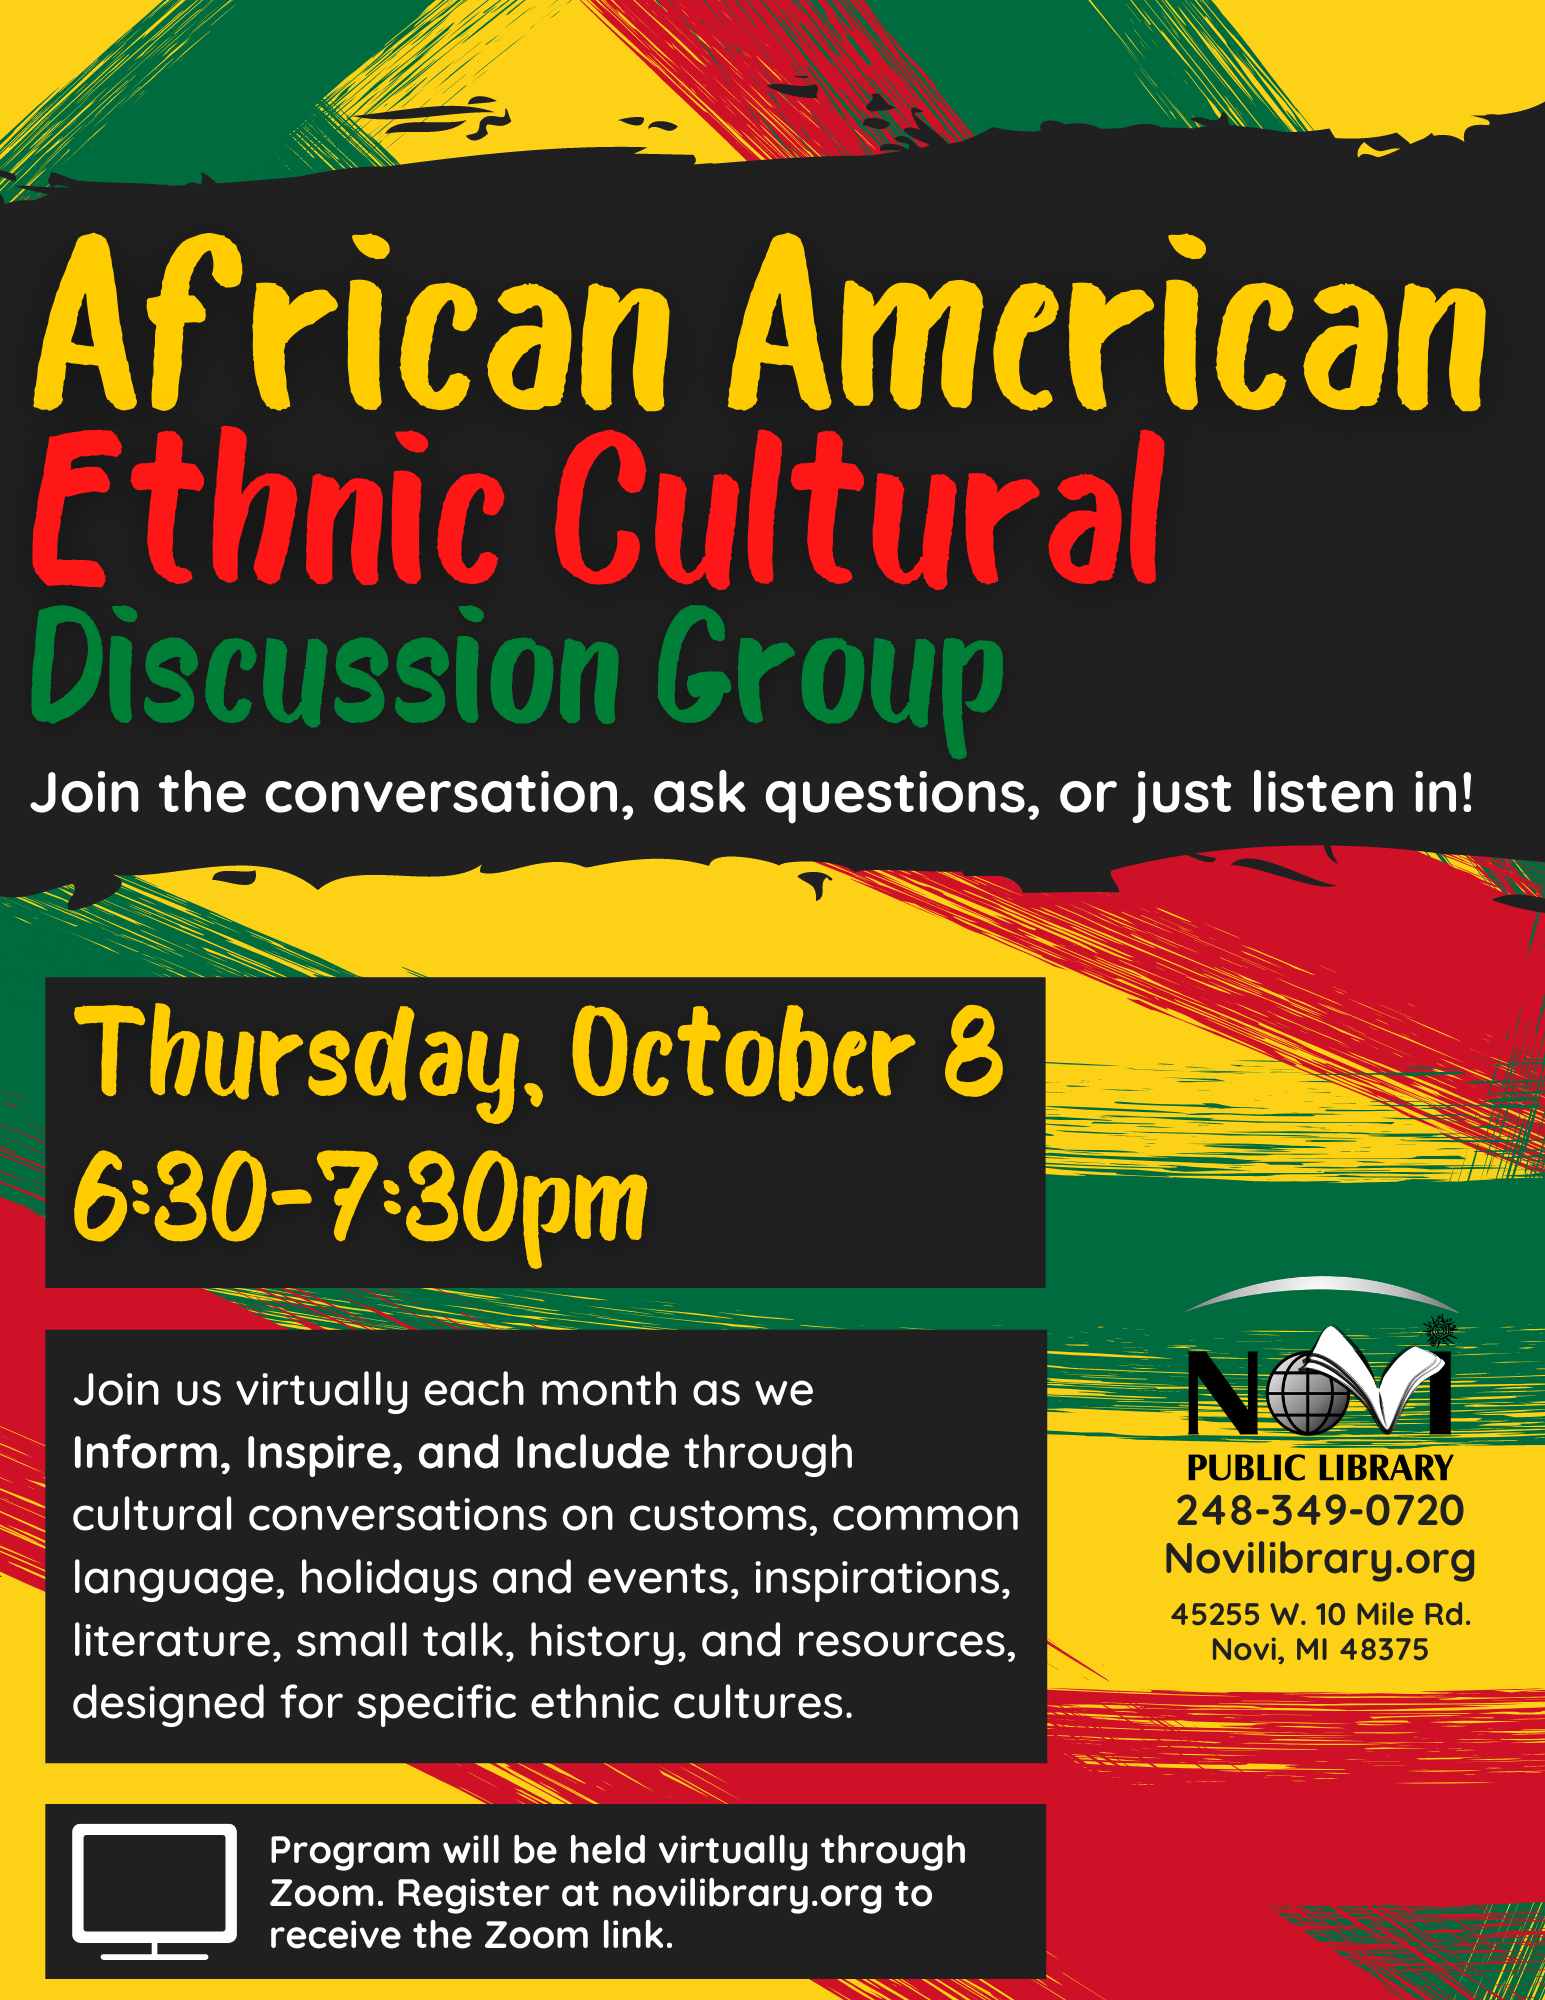 African American Ethnic Cultural Discussion Group